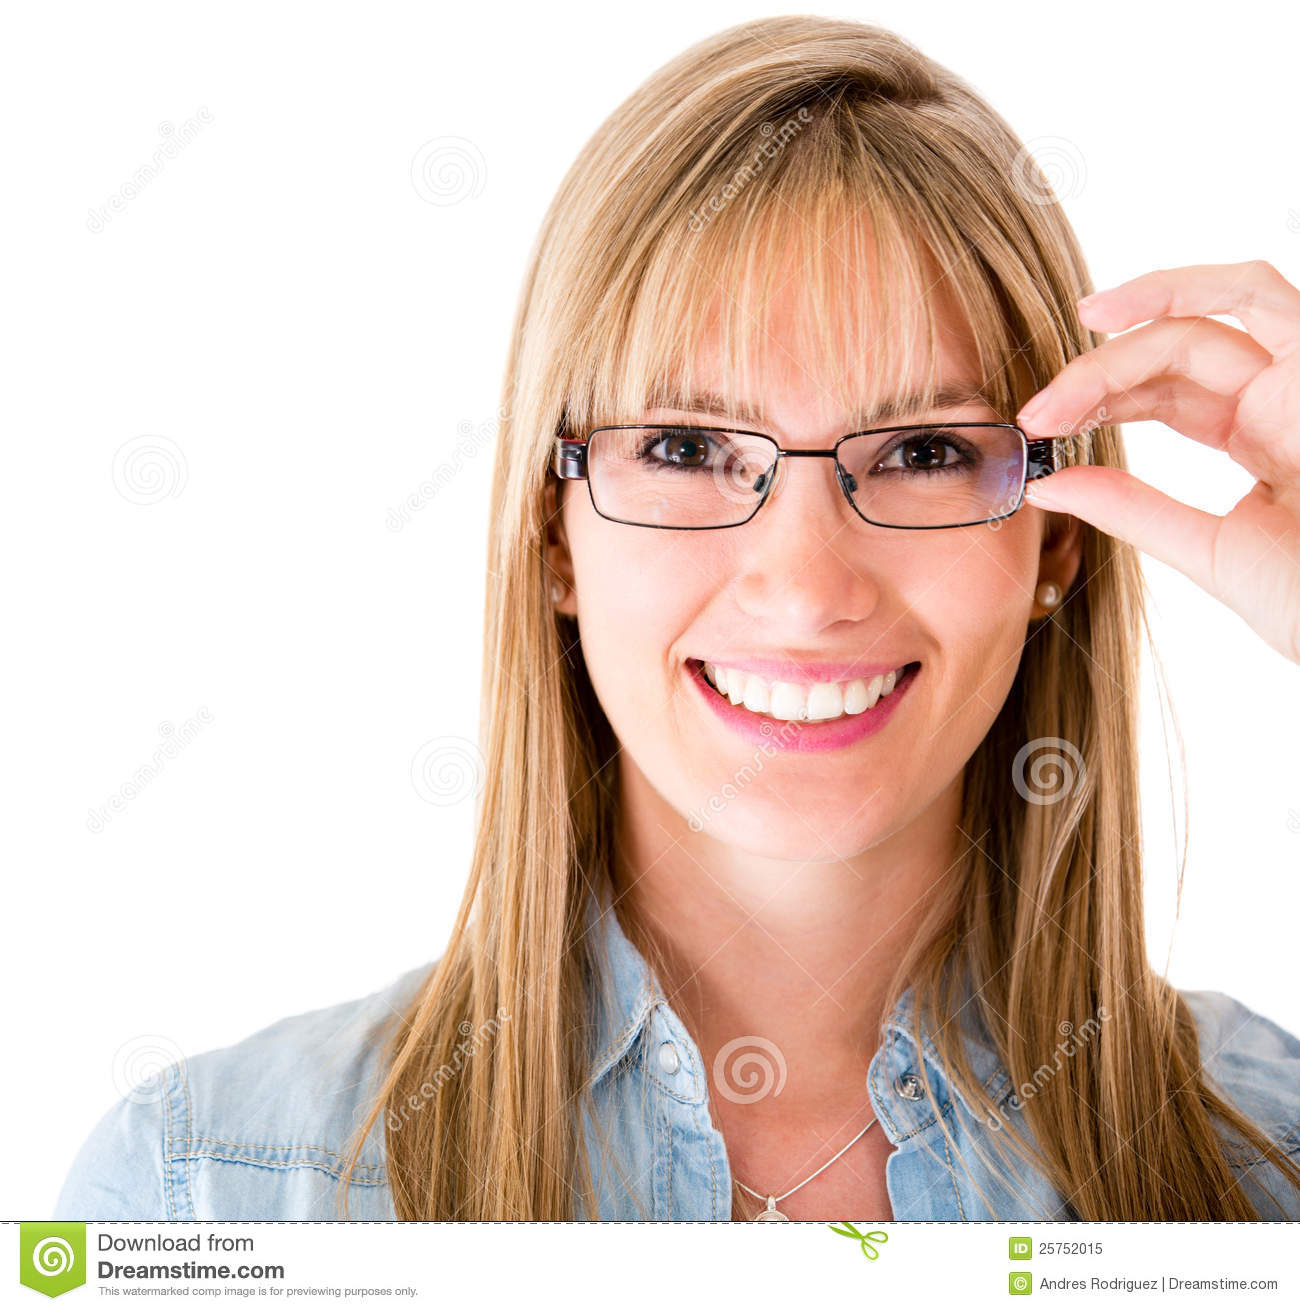 woman-wearing-glasses-25752015.jpg